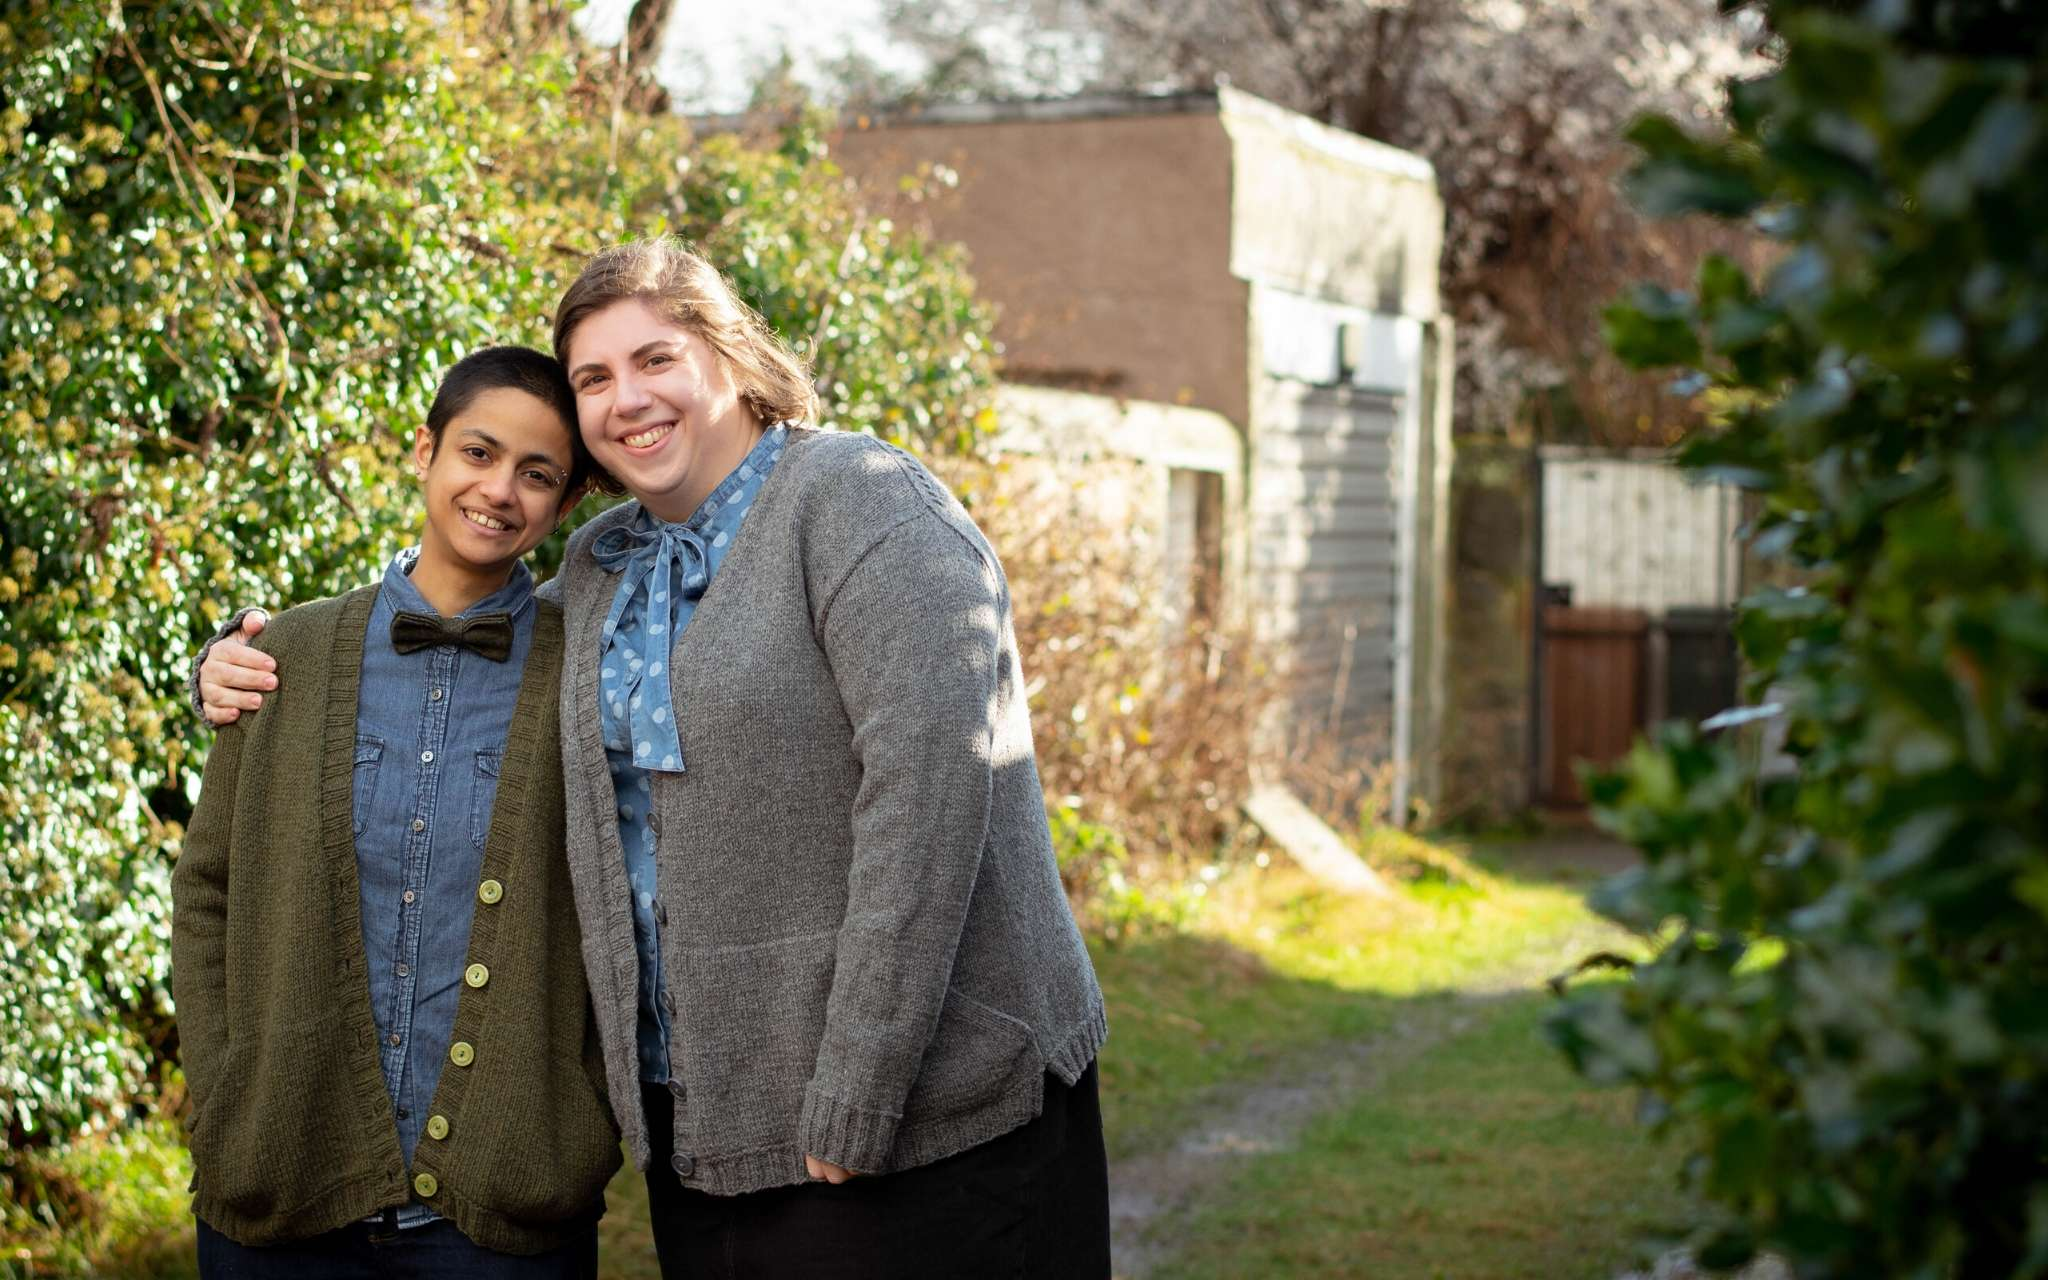 Two people stand hugging, both facing the camera, wearing granton cardigans in green and grey. One of them has brown skin and buzzcut dark hair, the other has white skin and a brown bob. They're both grinning.